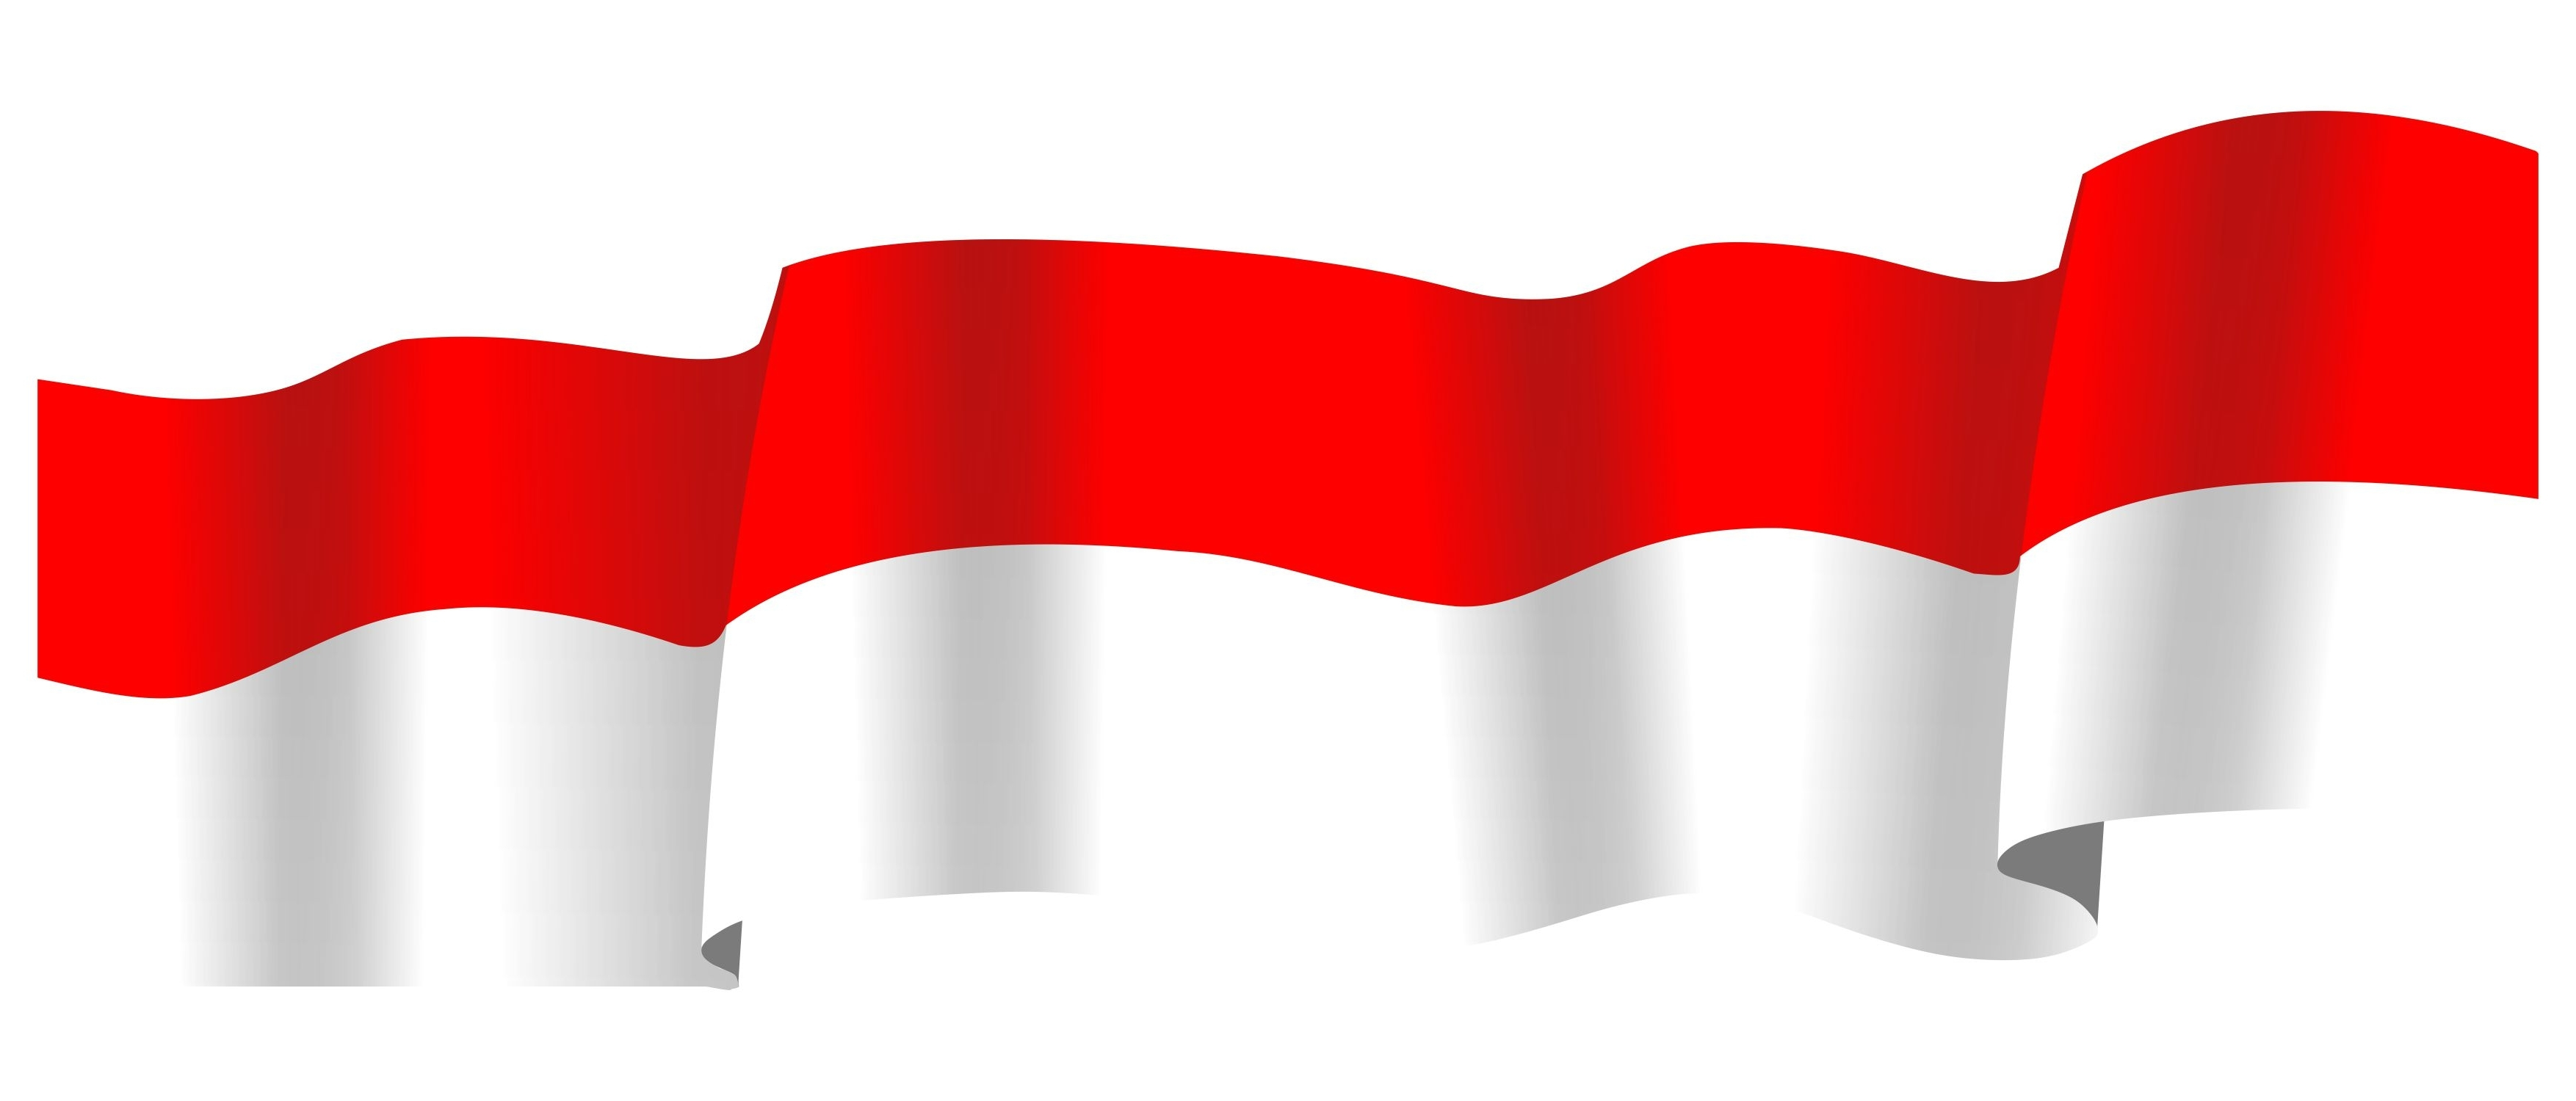 Bendera indonesia clipart svg free download Bendera indonesia vector free download svg free download